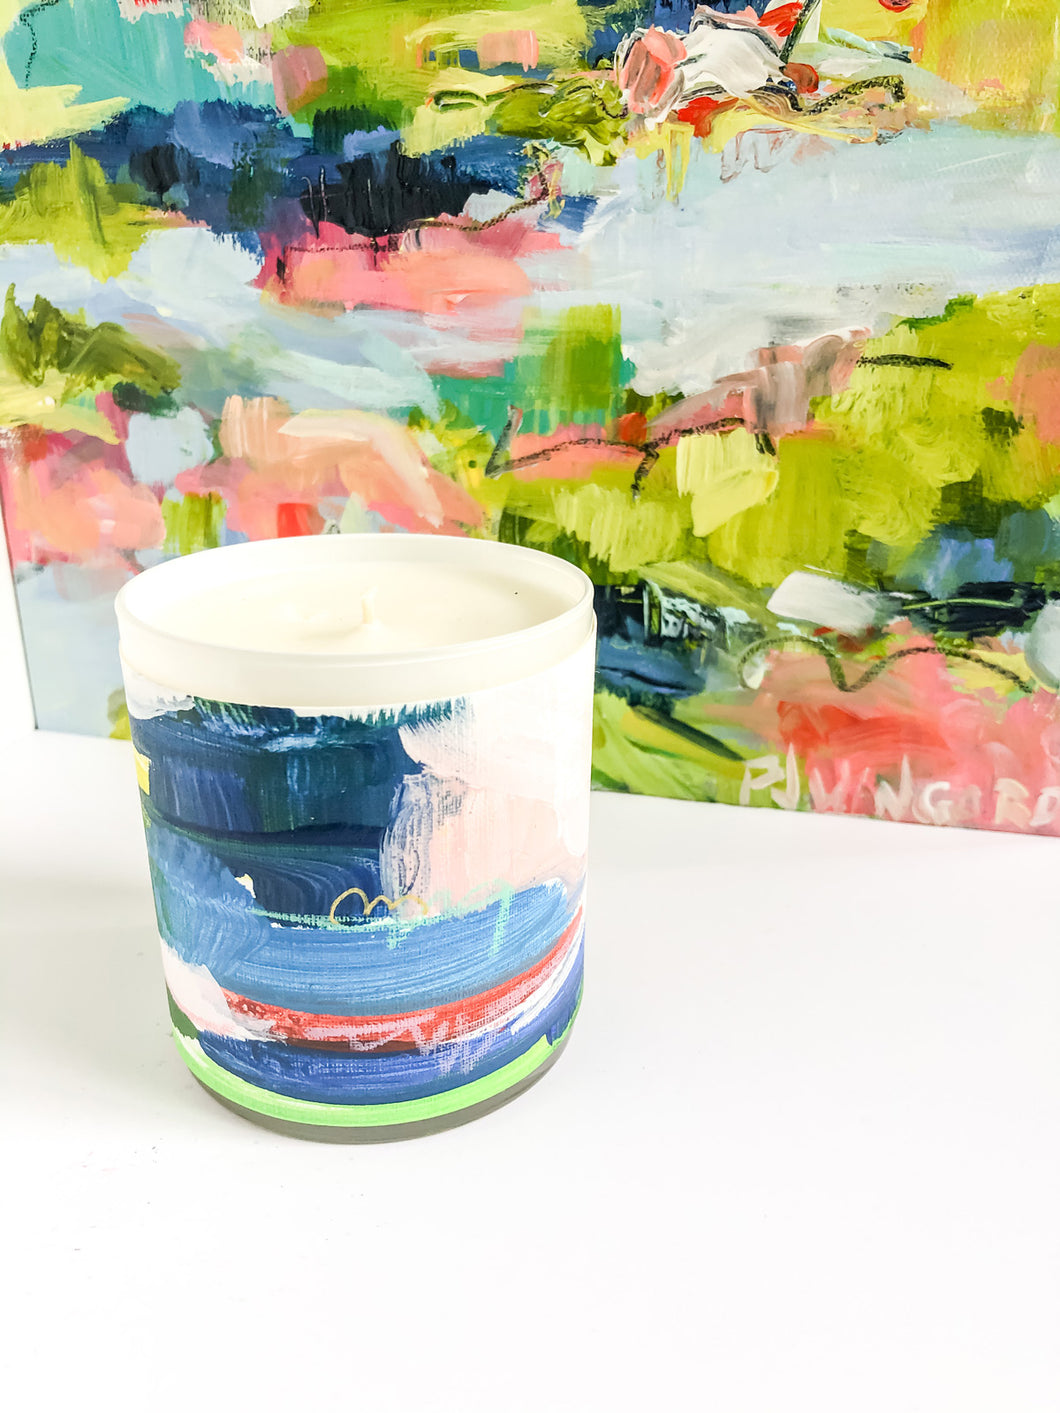 ORIGINAL FINE ART WRAPPED CANDLE: TWO